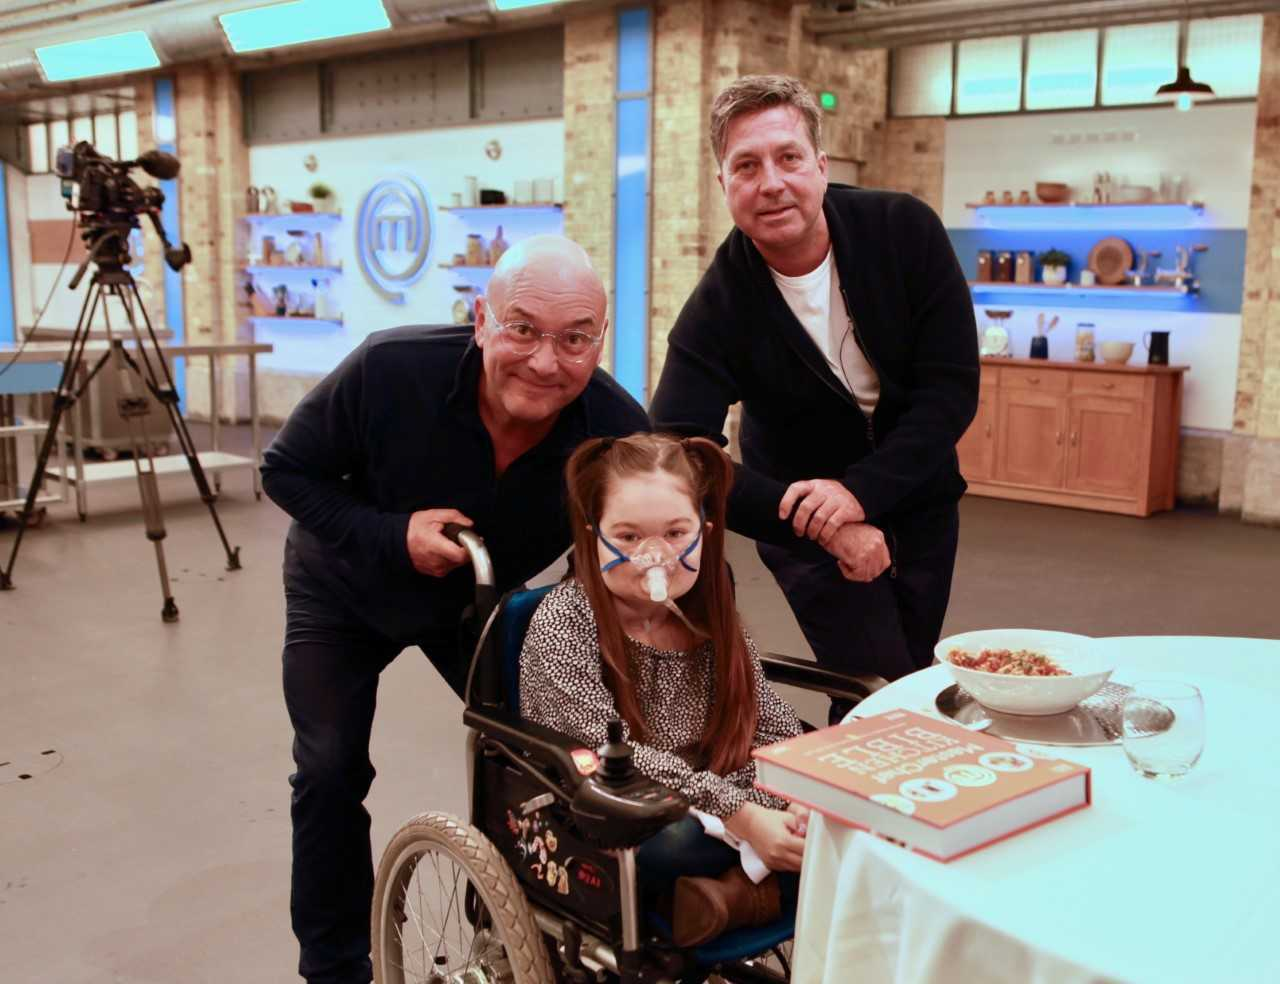 Belle visited the Masterchef studios in London and met her heroes, presenters Gregg Wallace (left) and John Torode (right).